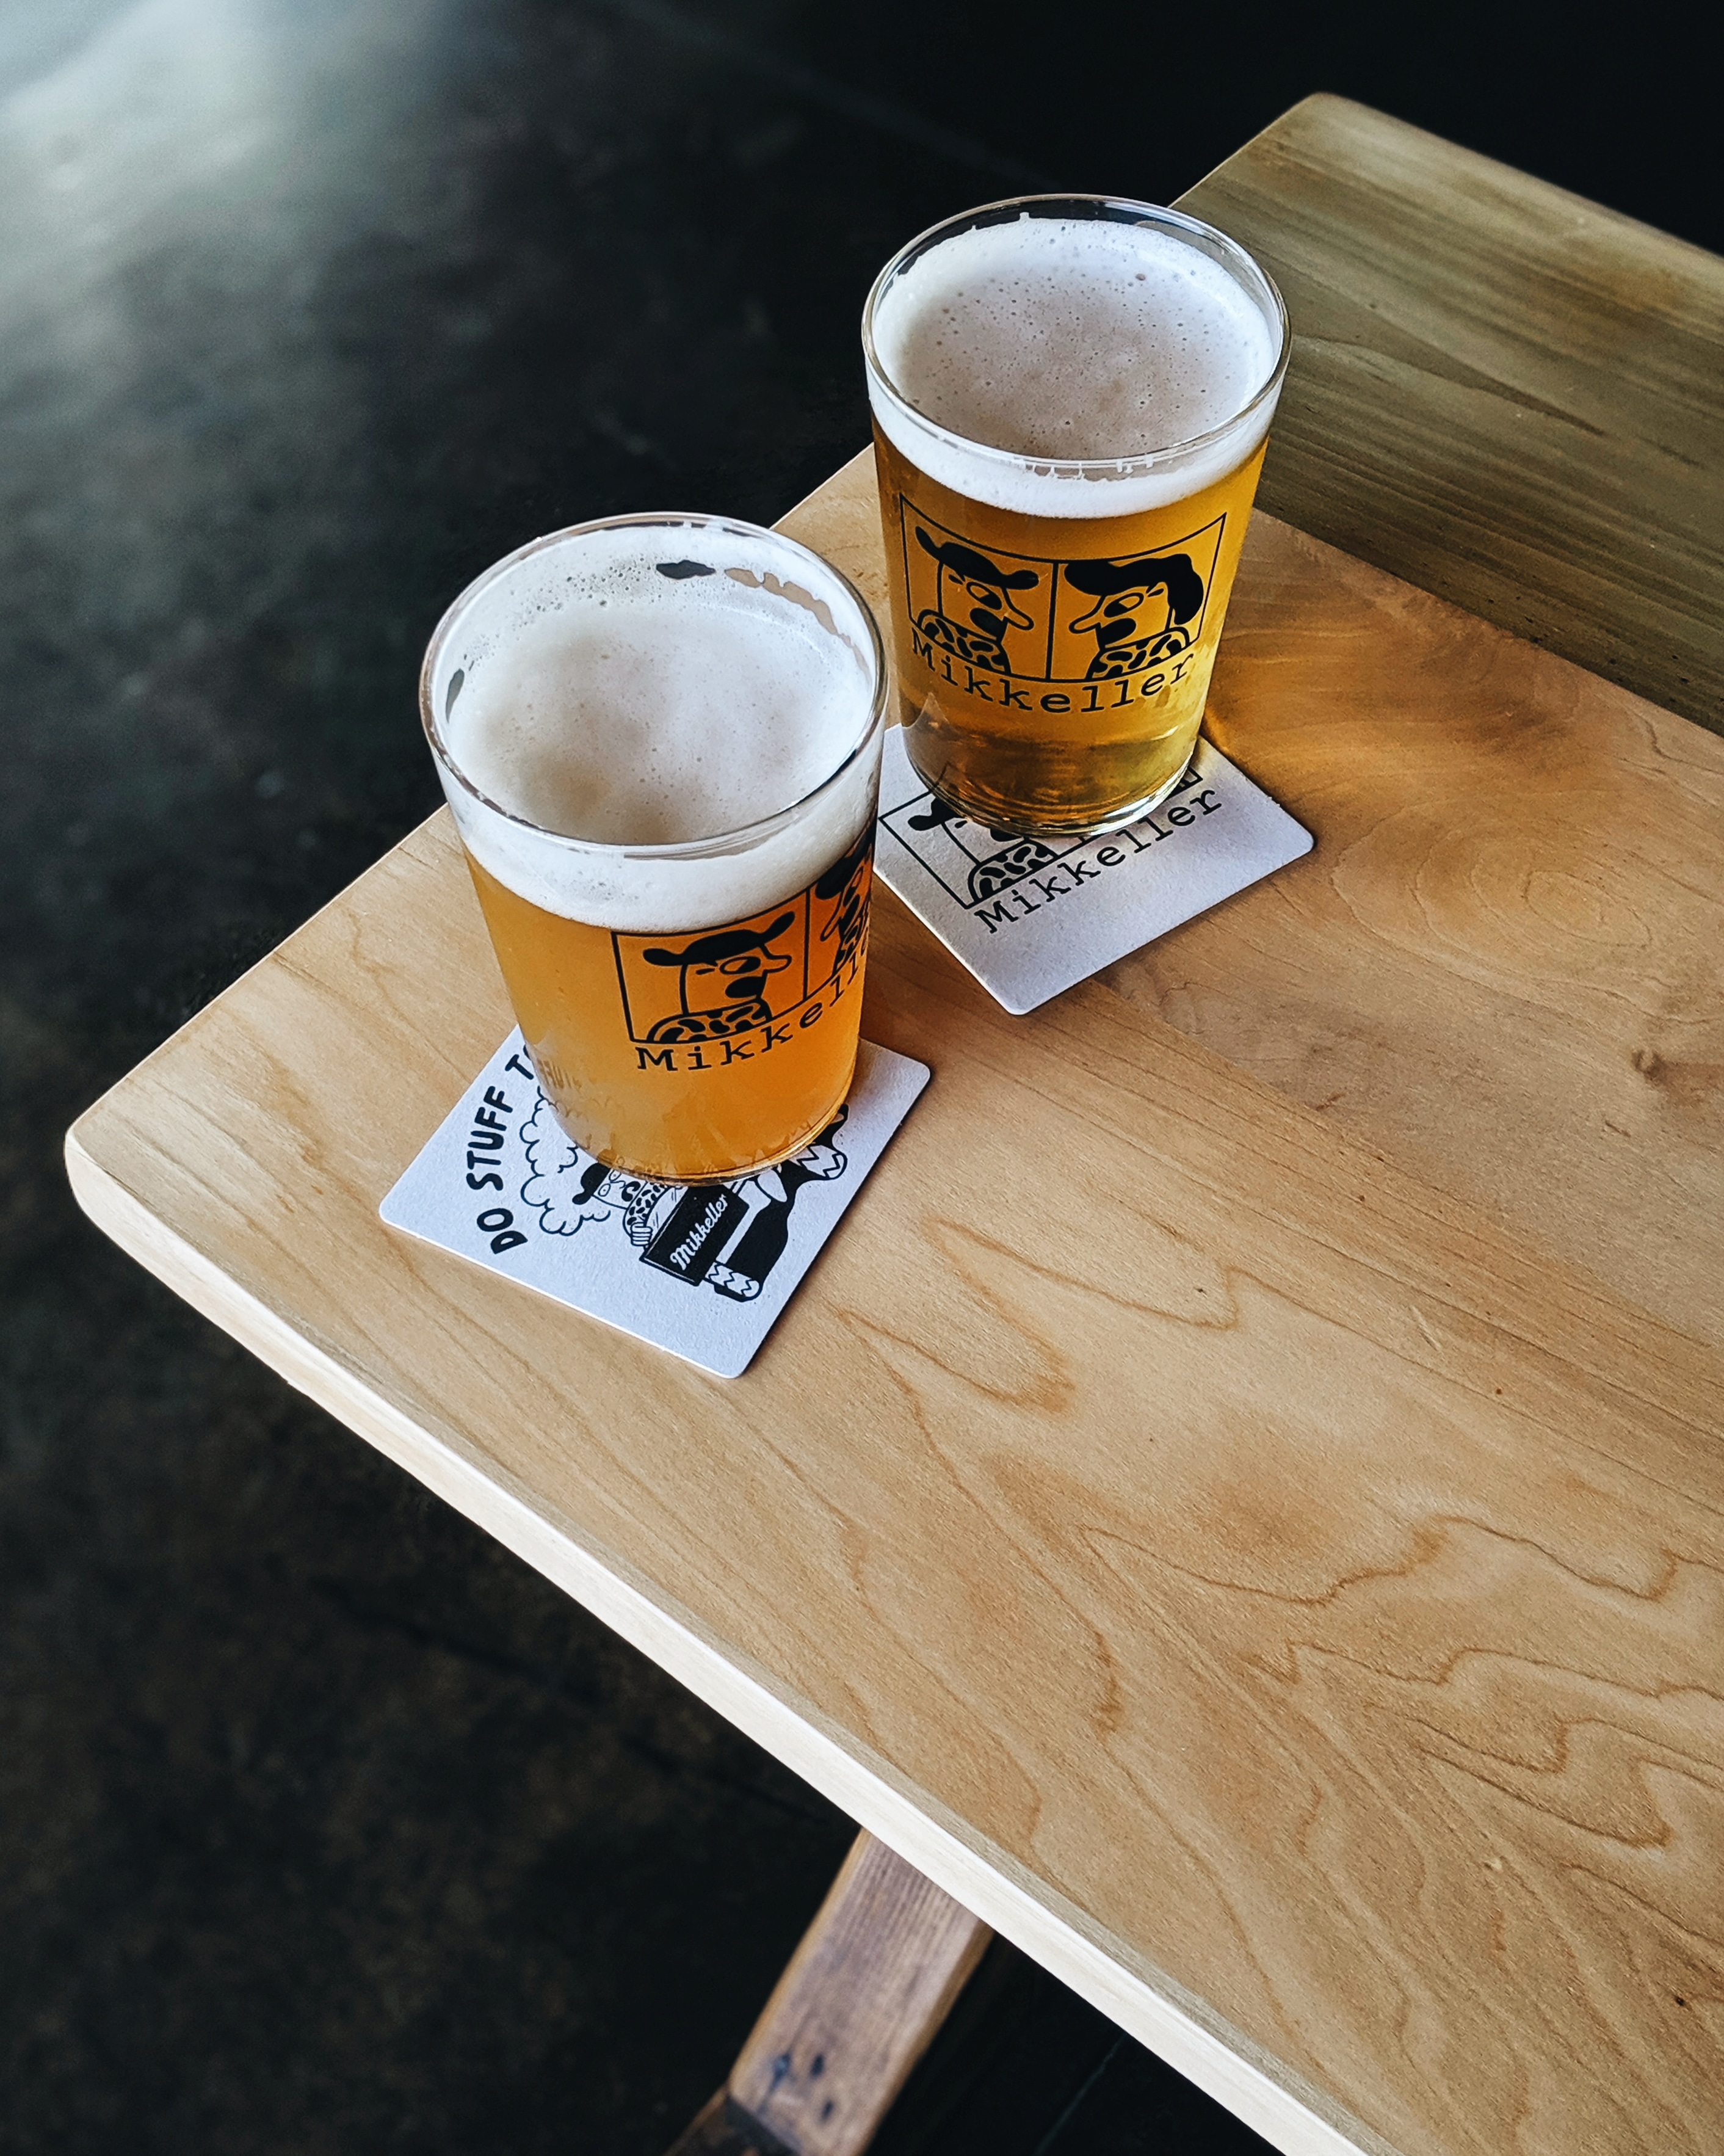 A picture of two pint glasses of Mikkeller beer on coasters, sitting on a wooden table at the Mikkeller pop-up space in Portland